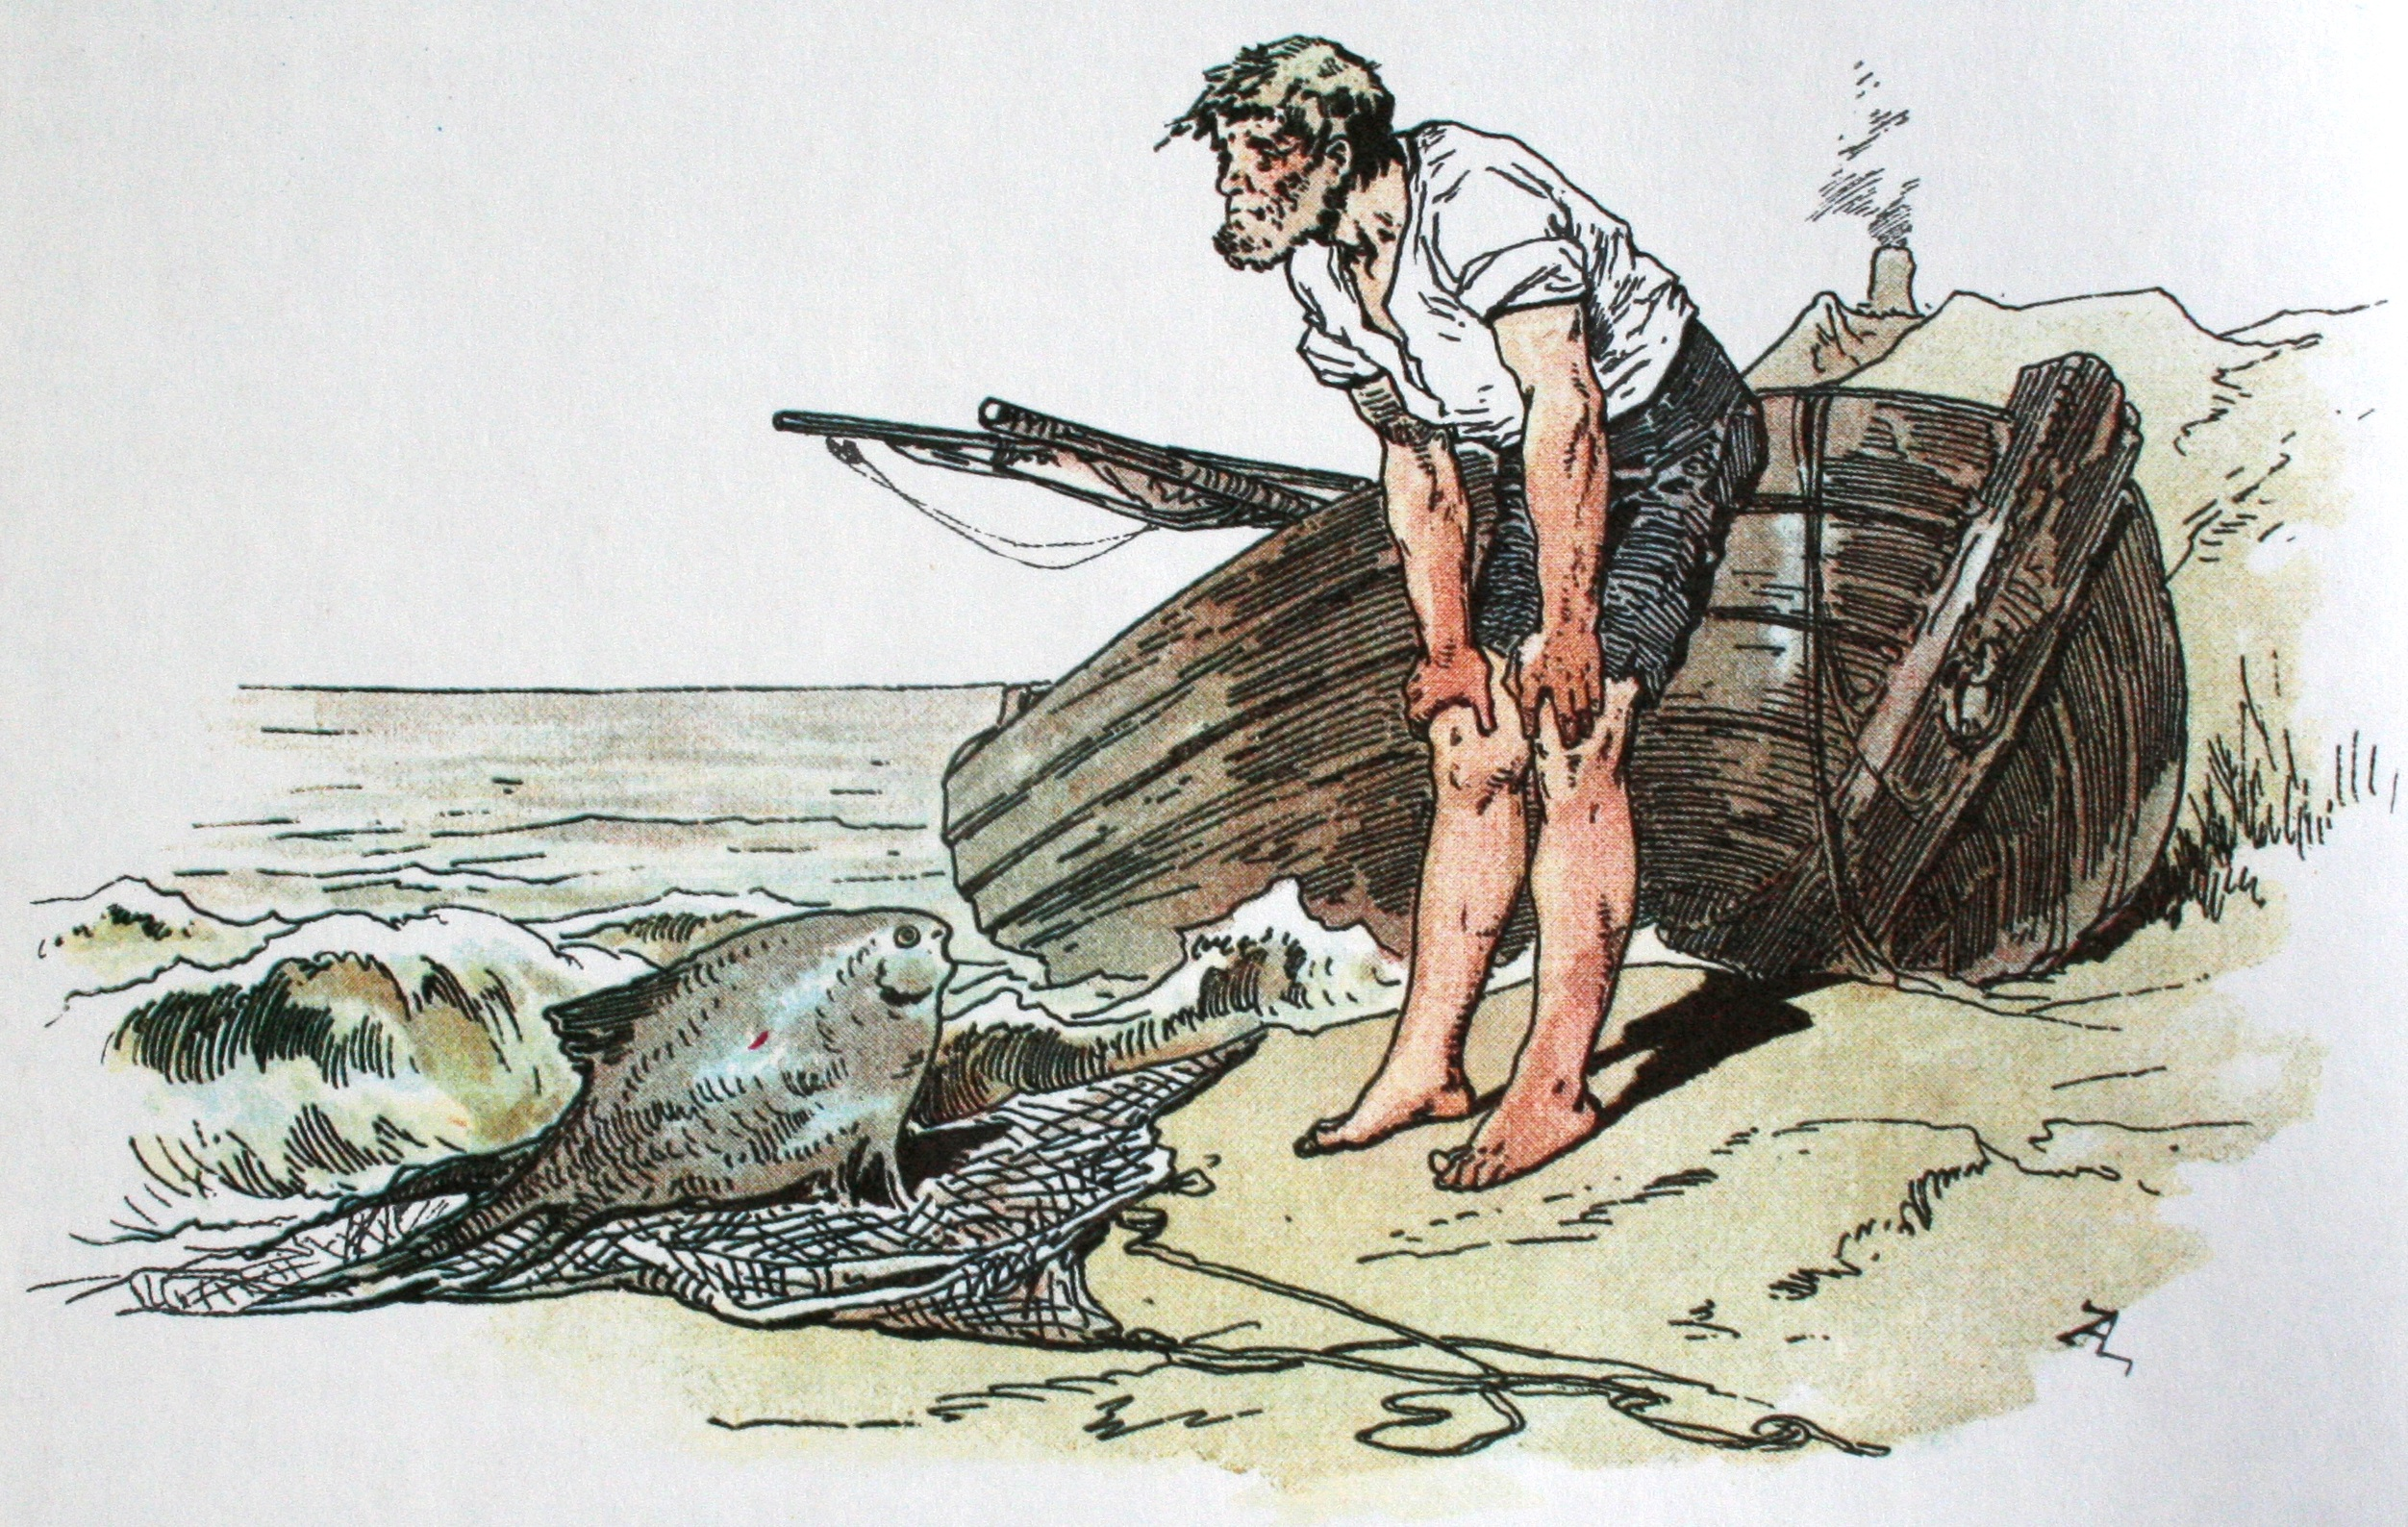 The Fisherman and His Wife illustration by Alexander Zick This work is in the public domain in the United States because it was published (or registered with the U.S. Copyright Office) before January 1, 1923.